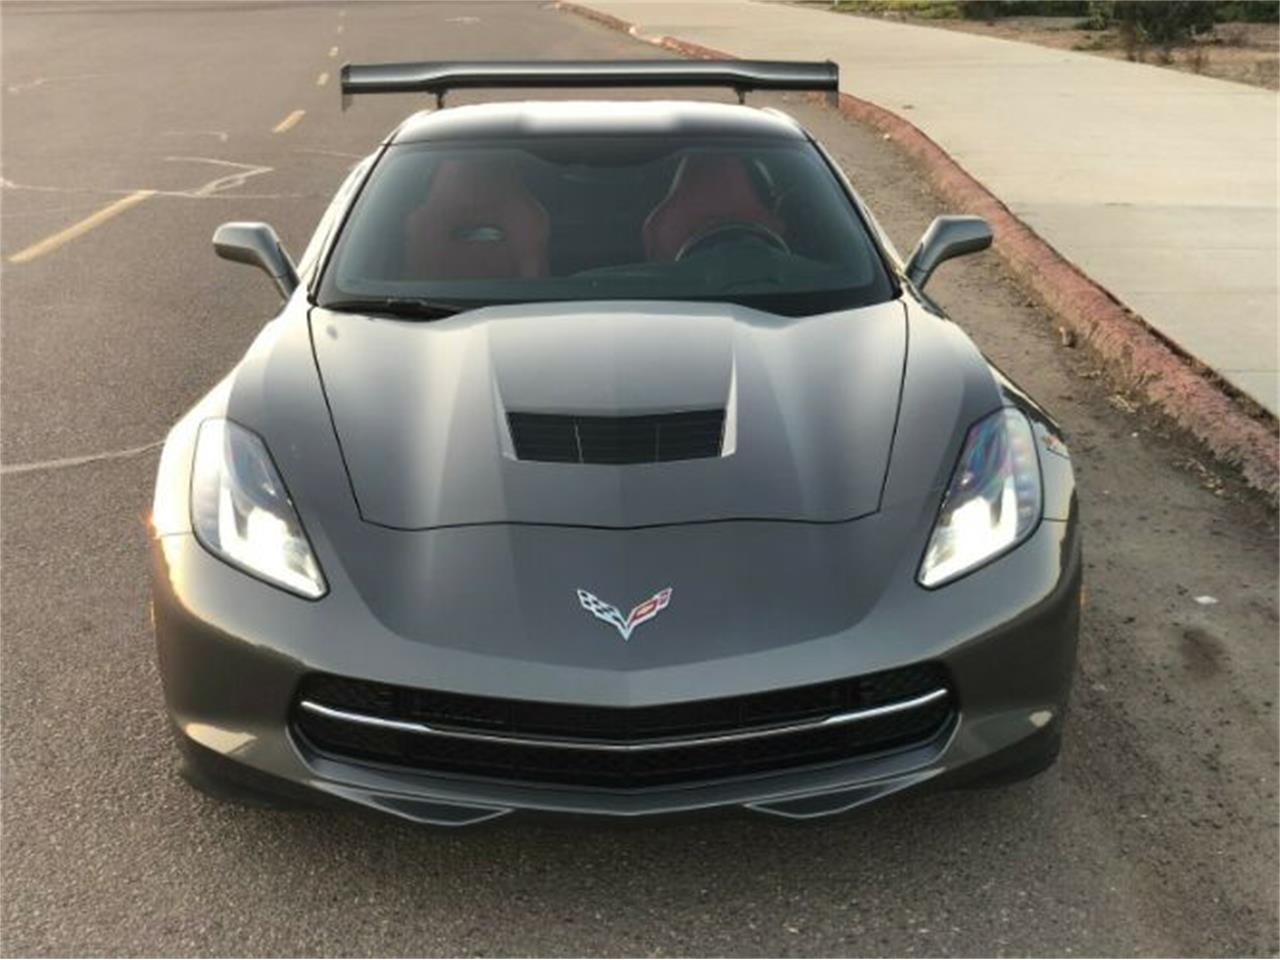 2016 Chevrolet Corvette (CC-1312235) for sale in Cadillac, Michigan